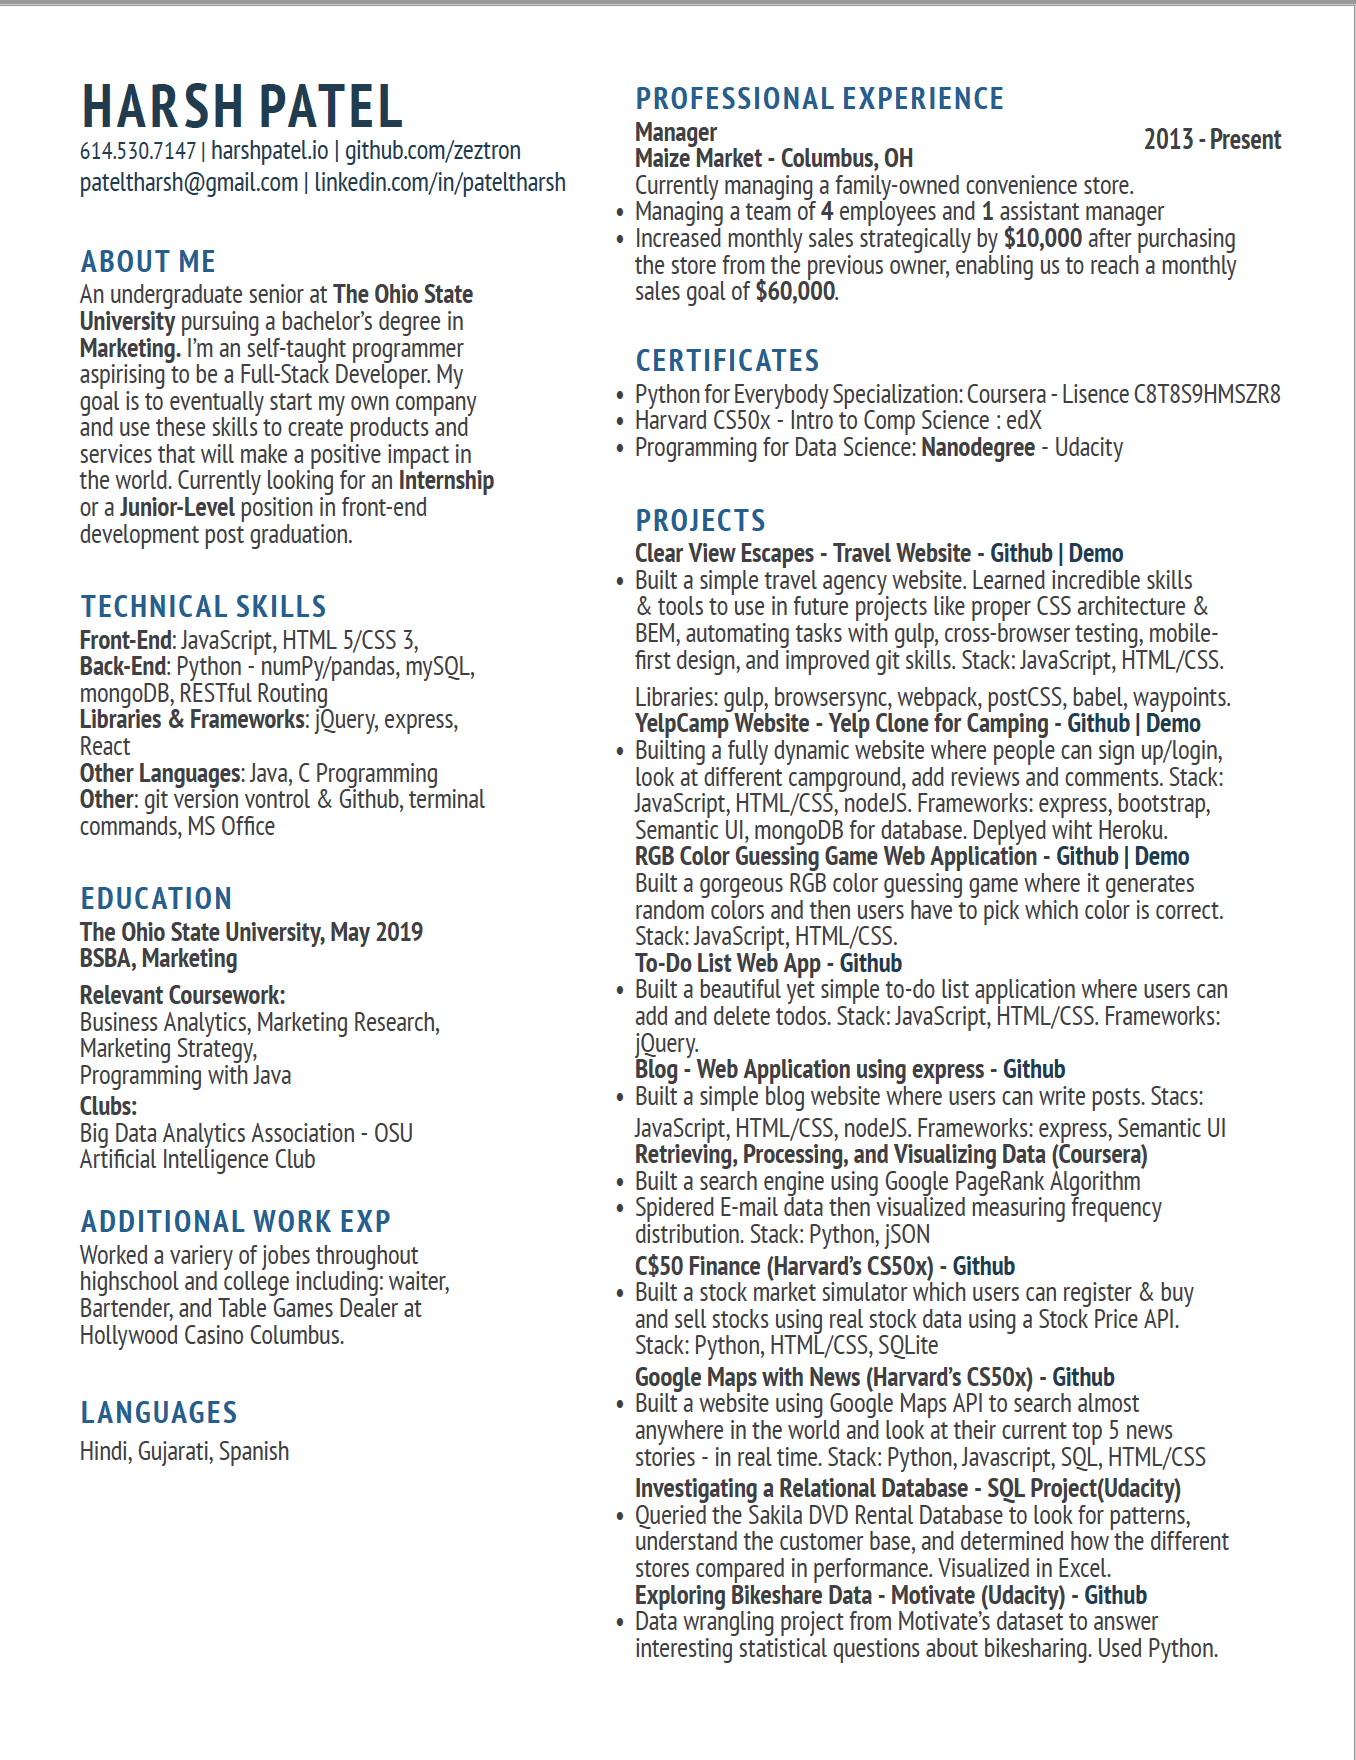 Looking for honest feedback on resume - Getting a Developer